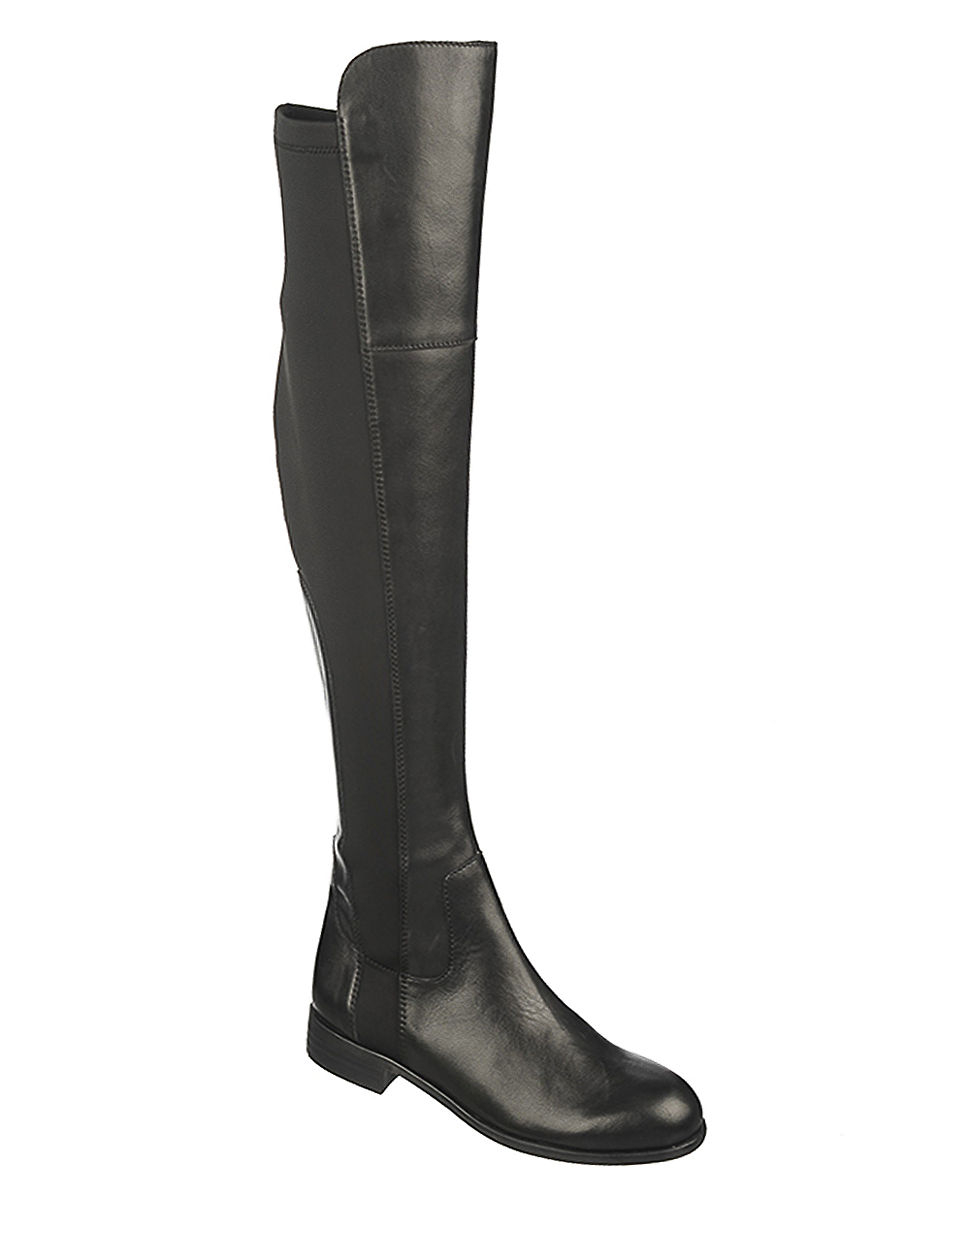 franco sarto motor leather knee high boots in black lyst